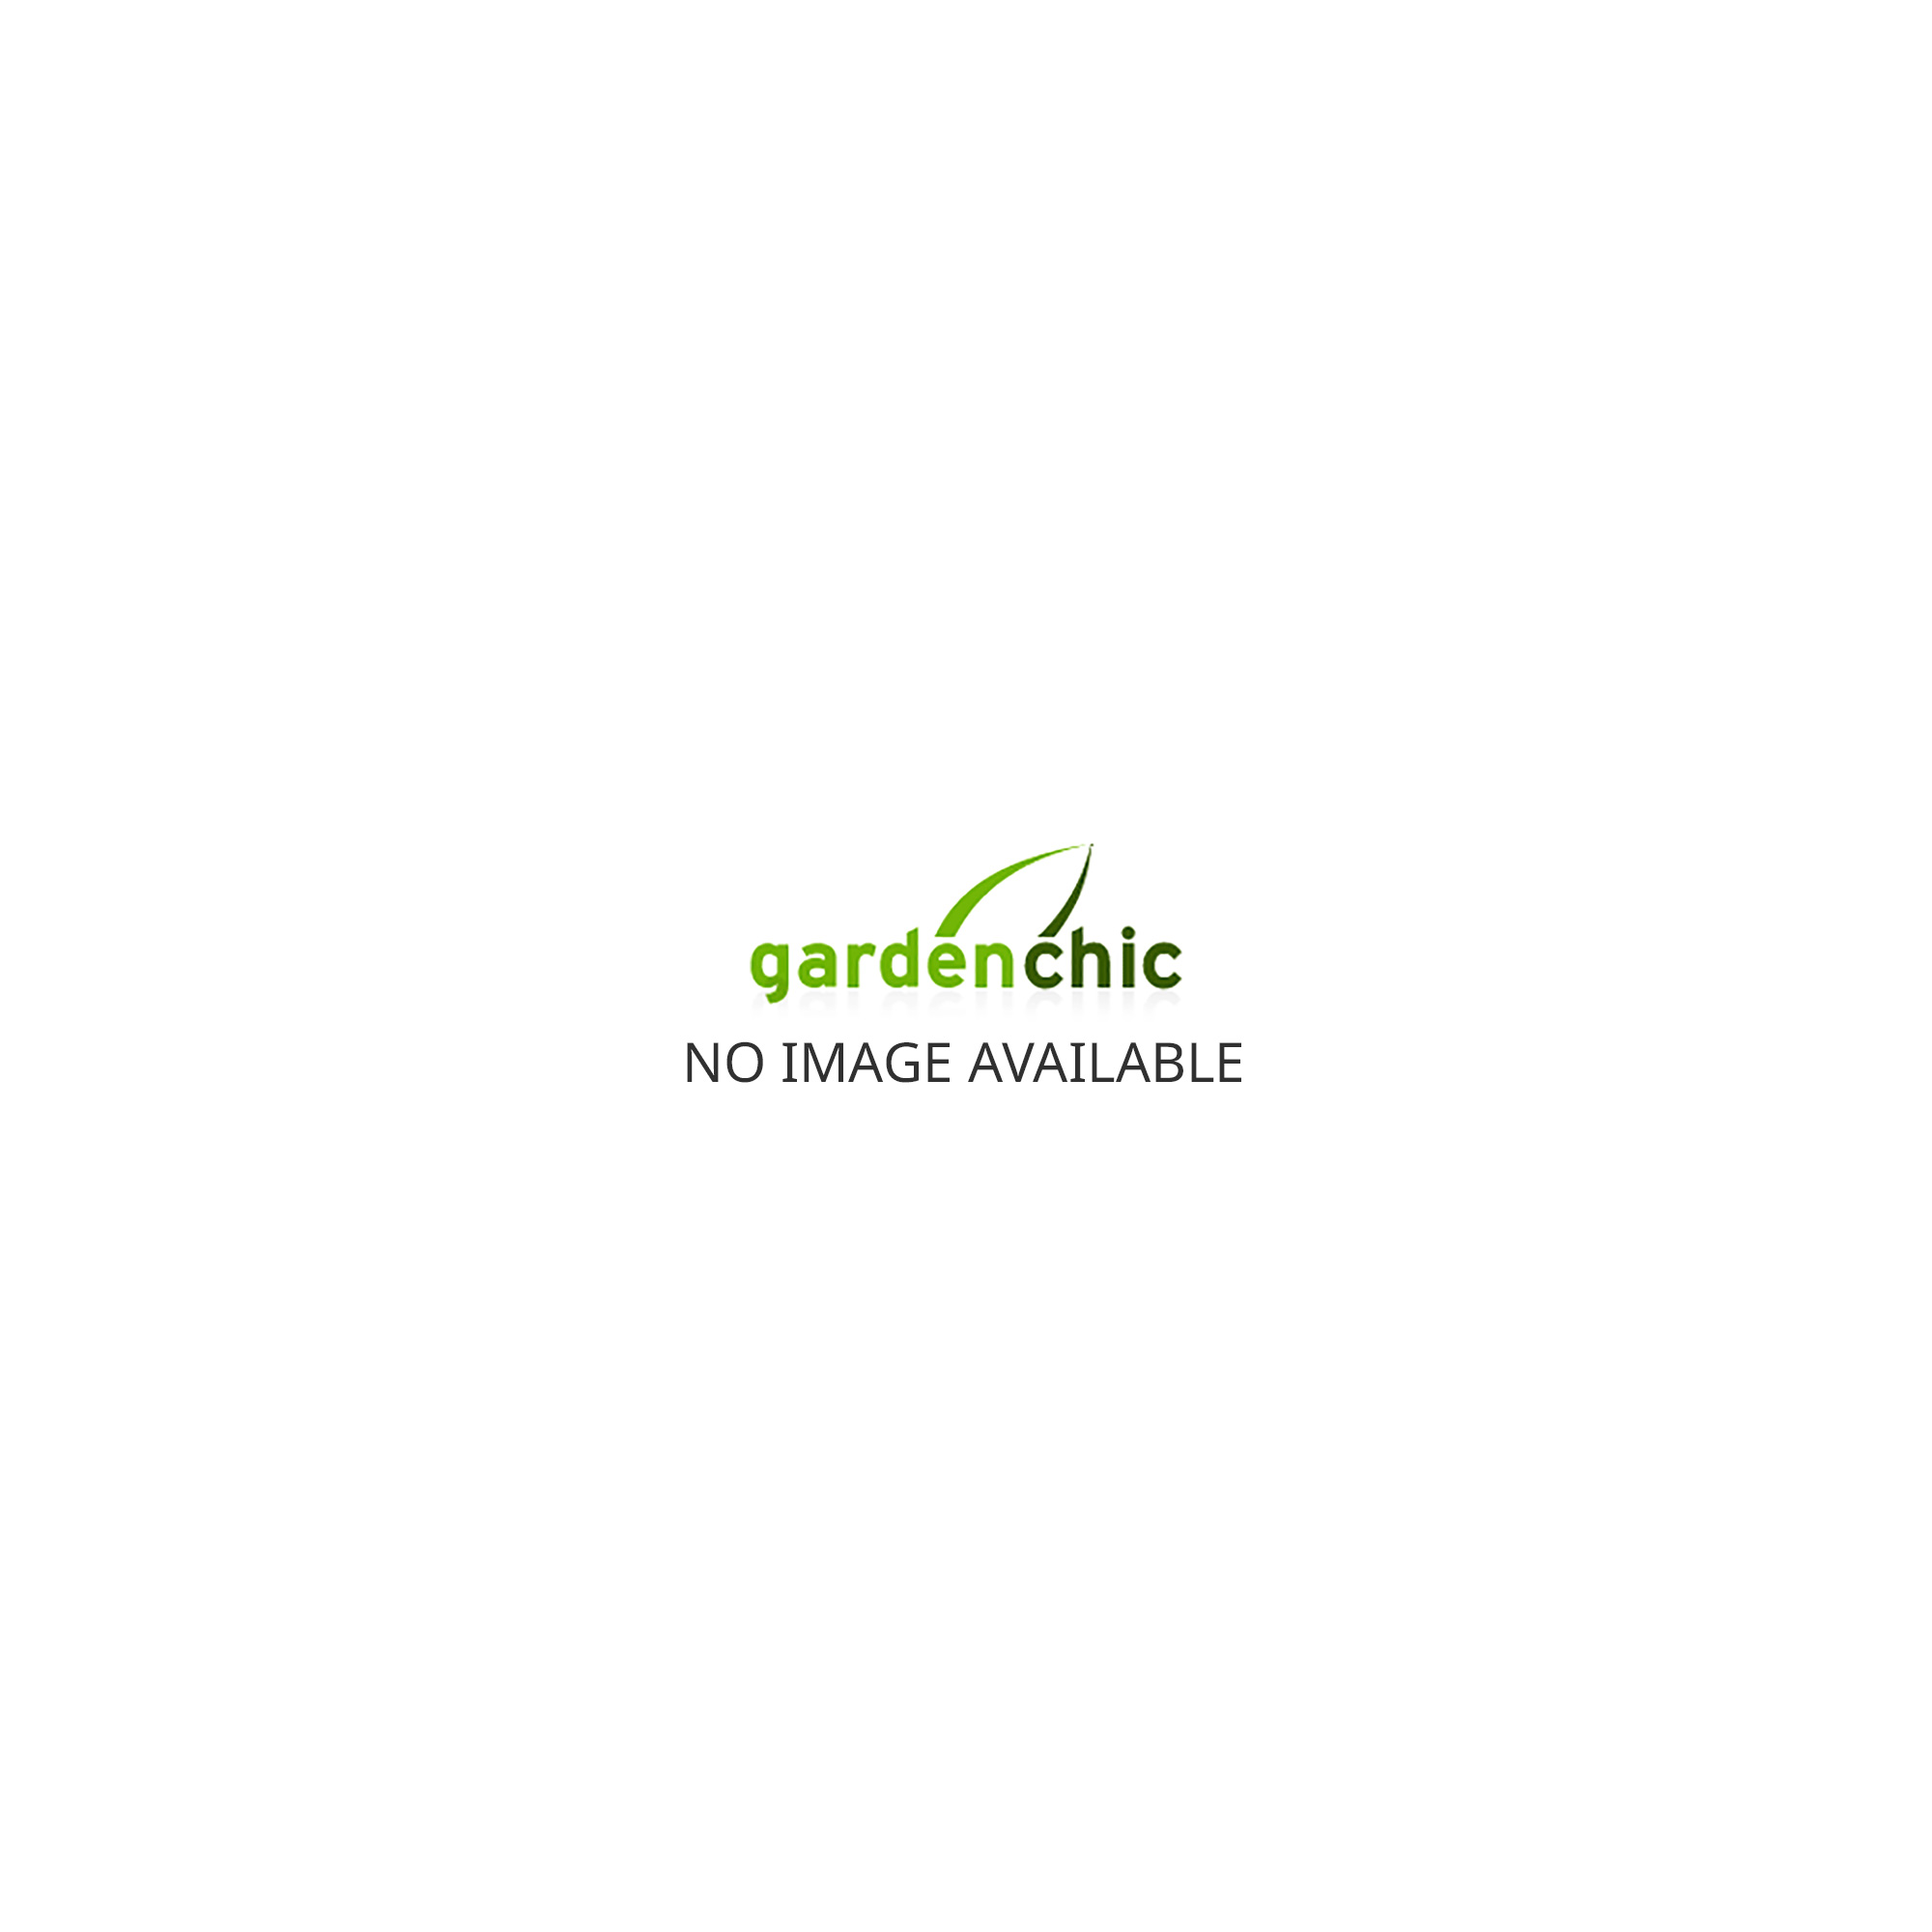 Orion 3800 6ft x 6ft Greenhouse - Green FREE Matching Base until APRIL 2018